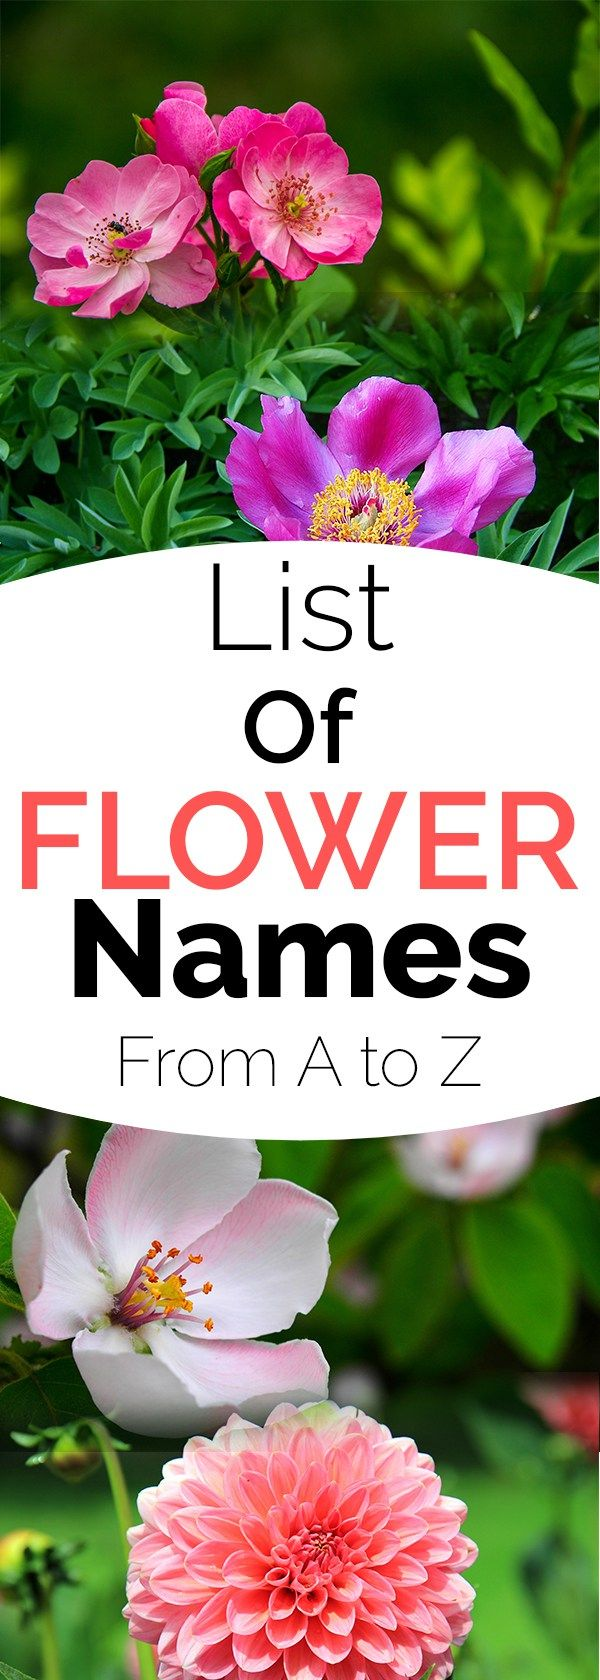 List Of Flower Names From A To Z Flowers Name List Beautiful